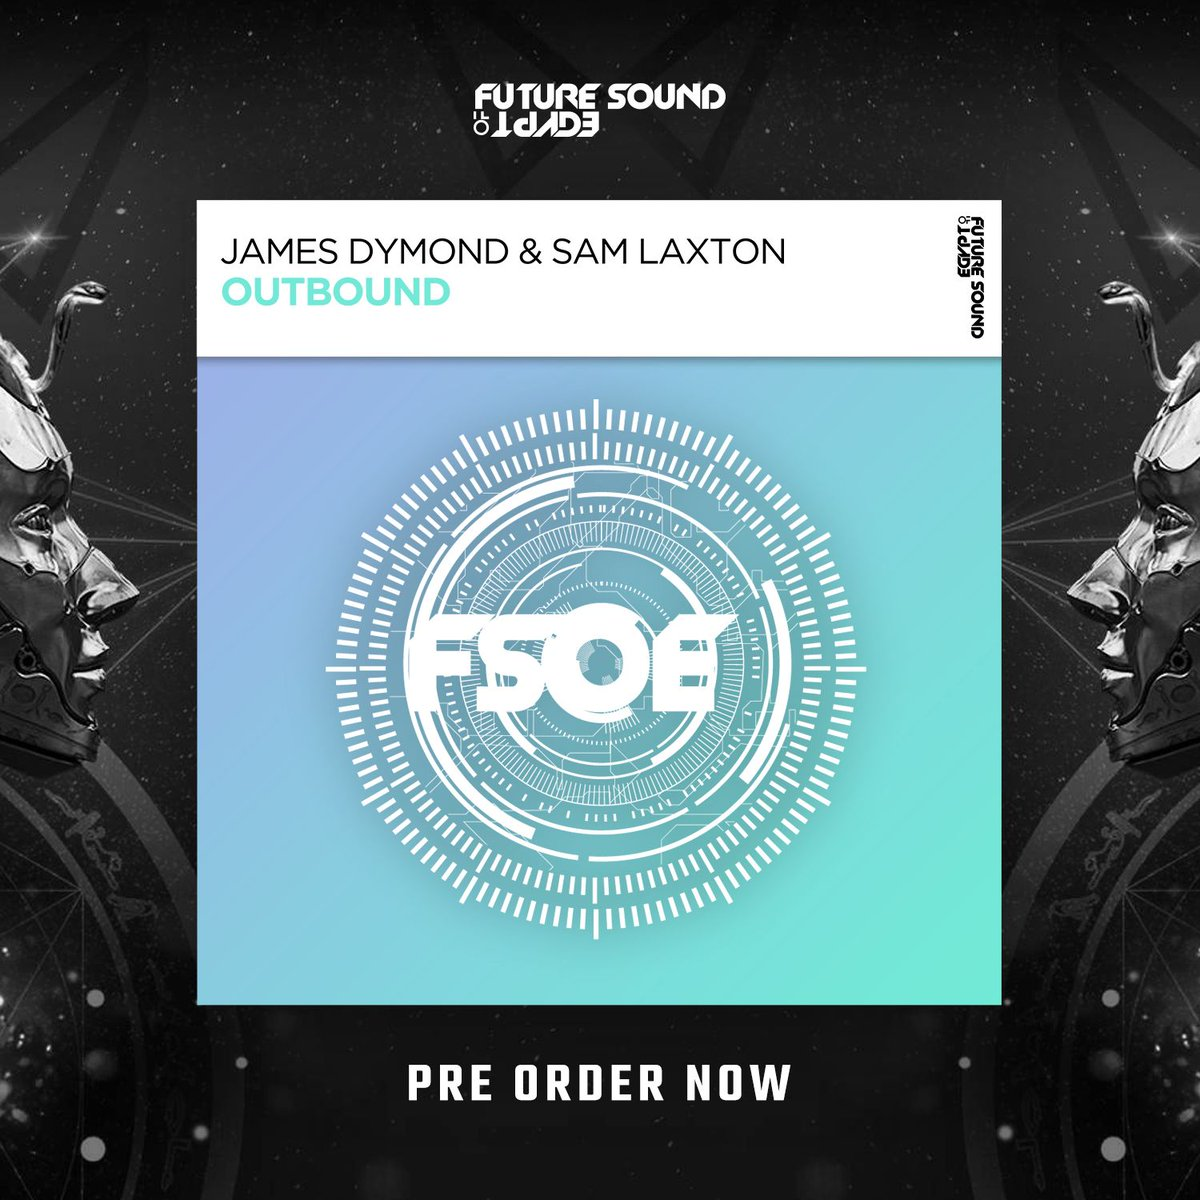 @James_Dymond teams up with @SamLaxtonDJ for their first collaboration, Outbound! Already getting early ASOT support, available to pre order now. Full release next Friday 28th August on FSOE!  Pre-order: https://t.co/zqyVGfIwn9 https://t.co/GTY1GcxjXr